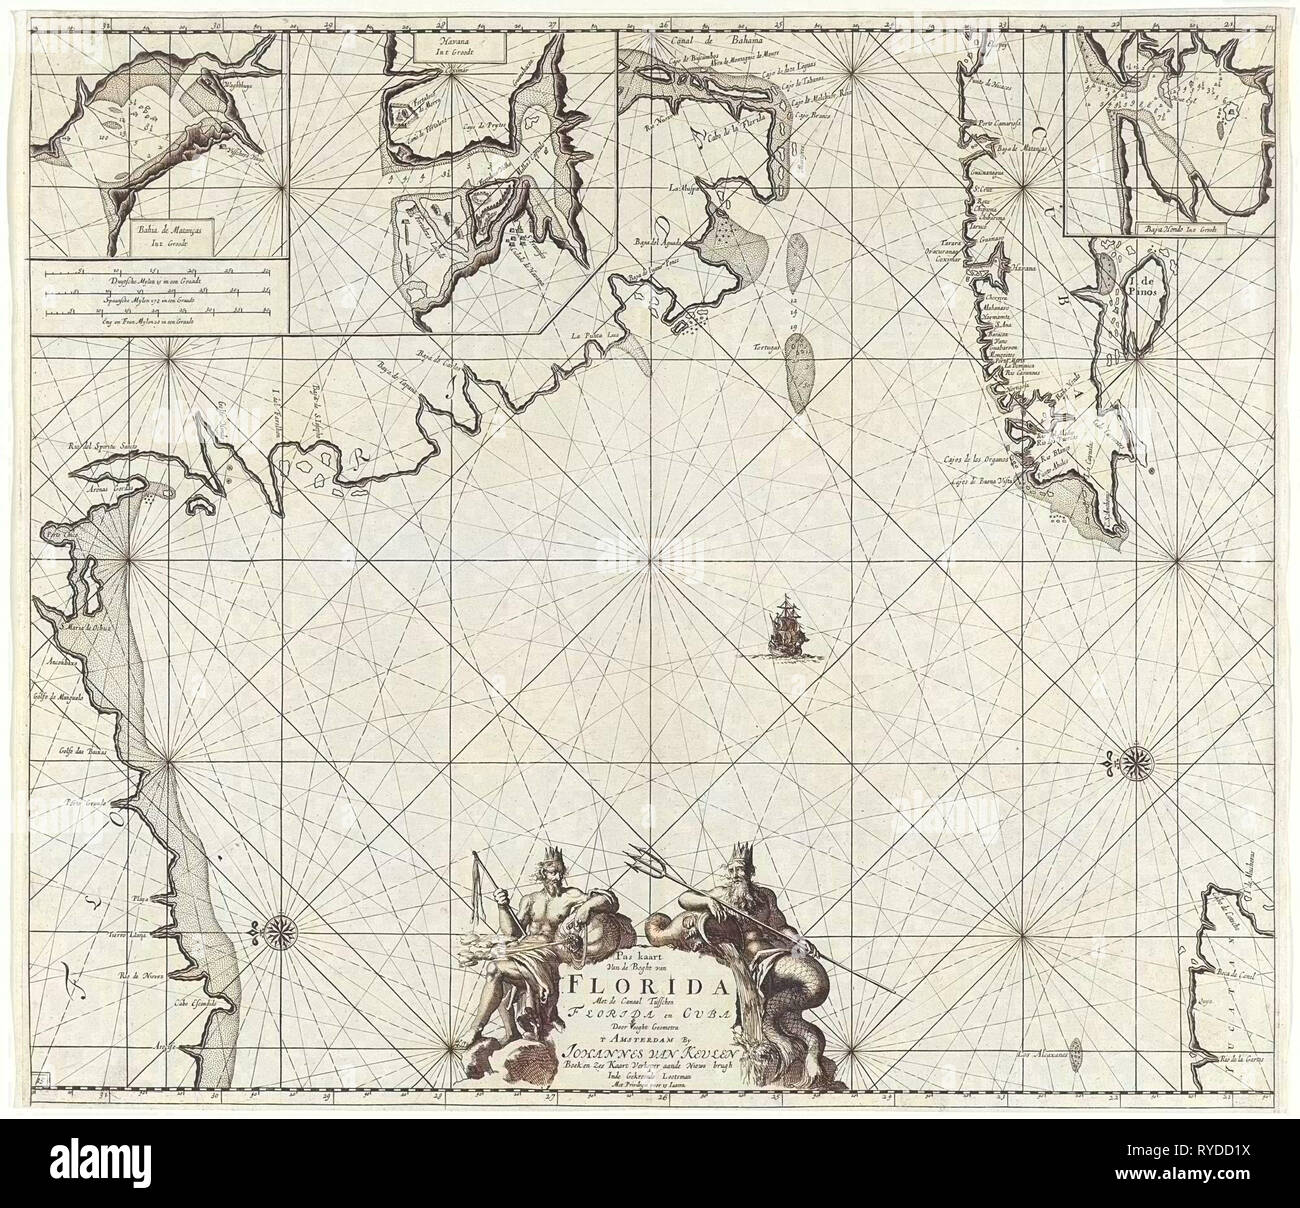 Sea chart of part of the Gulf of Mexico, with the coast of Florida, Jan Luyken, Claes Jansz Voogt, Johannes van Keulen (I), 1684 - 1799 - Stock Image